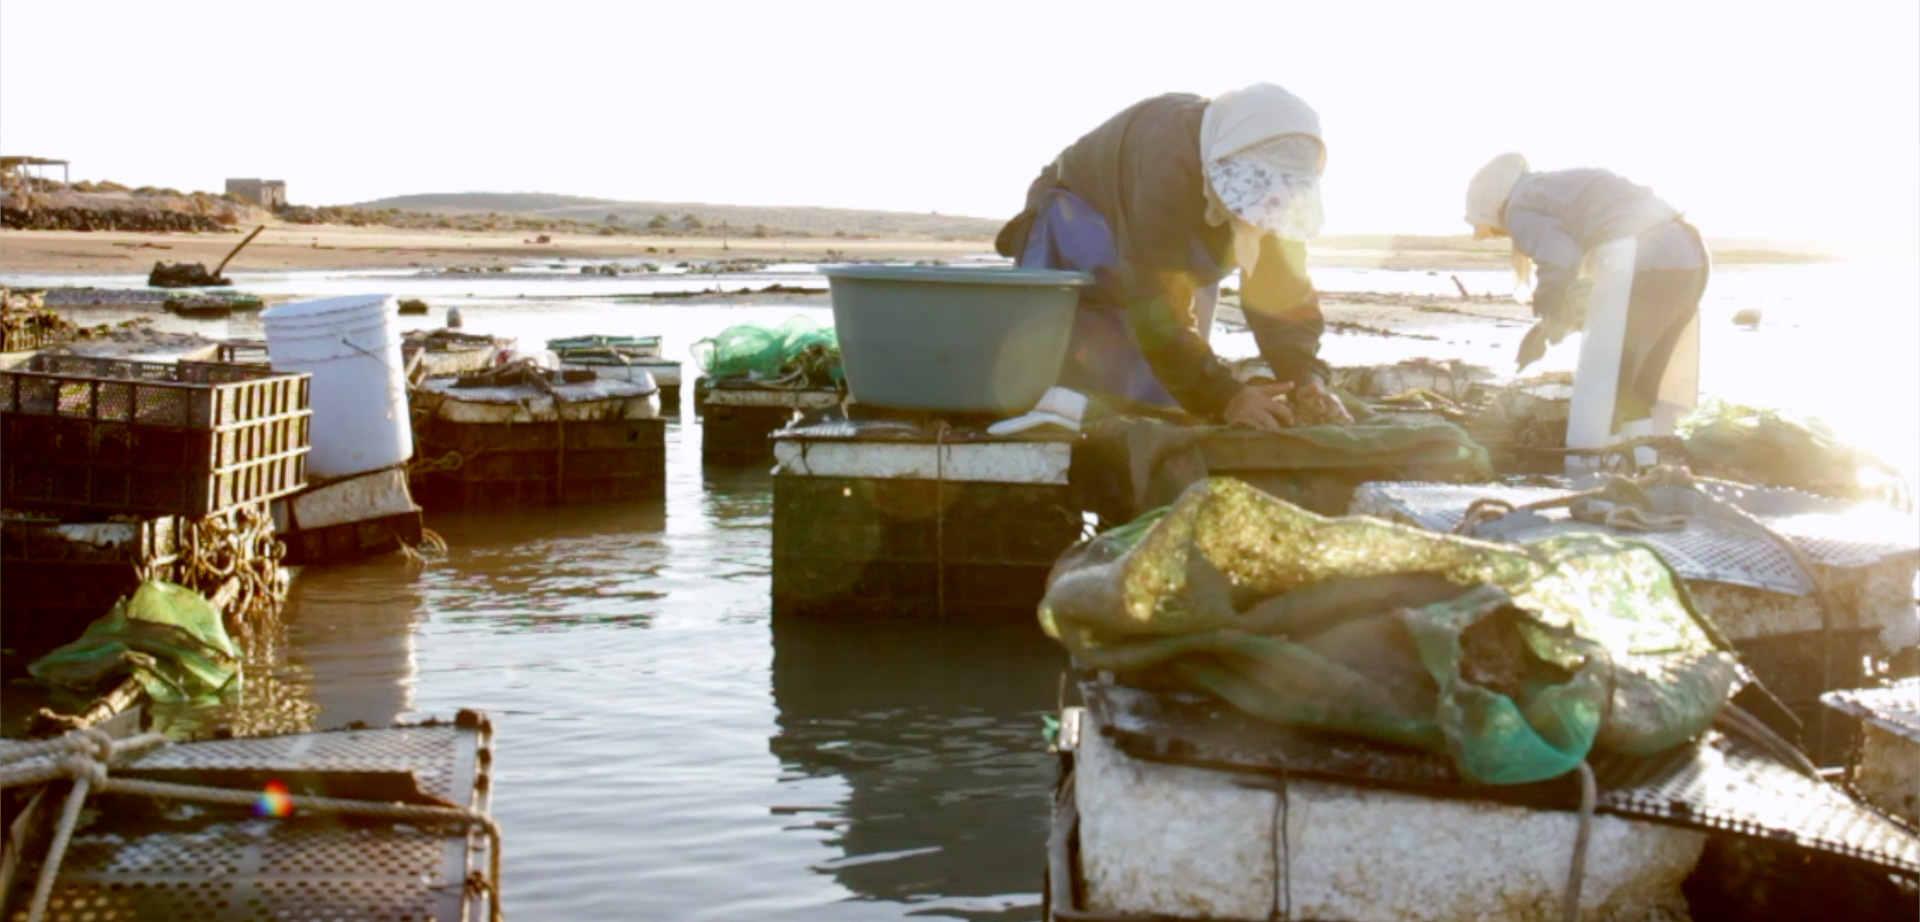 woman farming oysters in Mexico